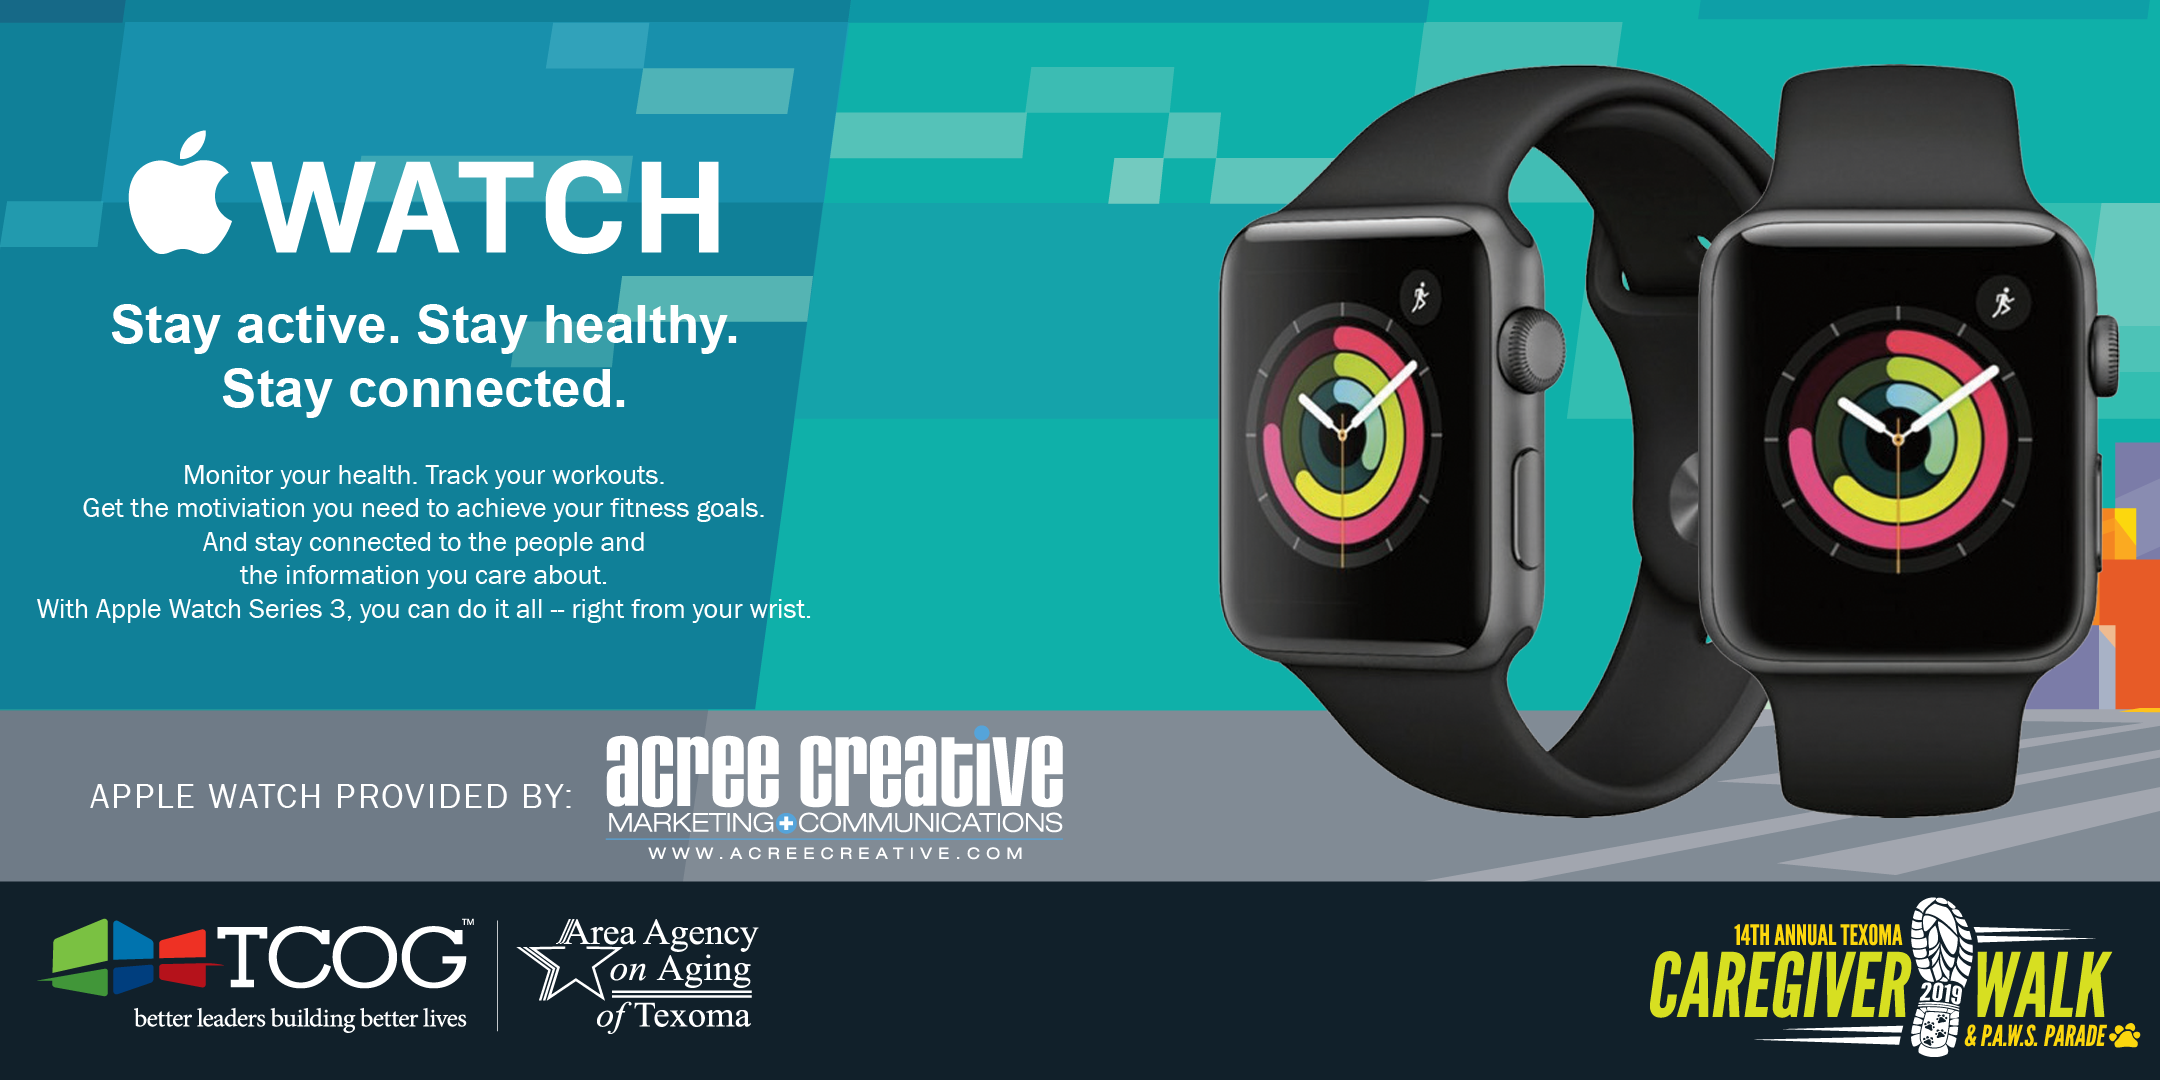 Apple Watch Series 3 generously provided by Acree Creative